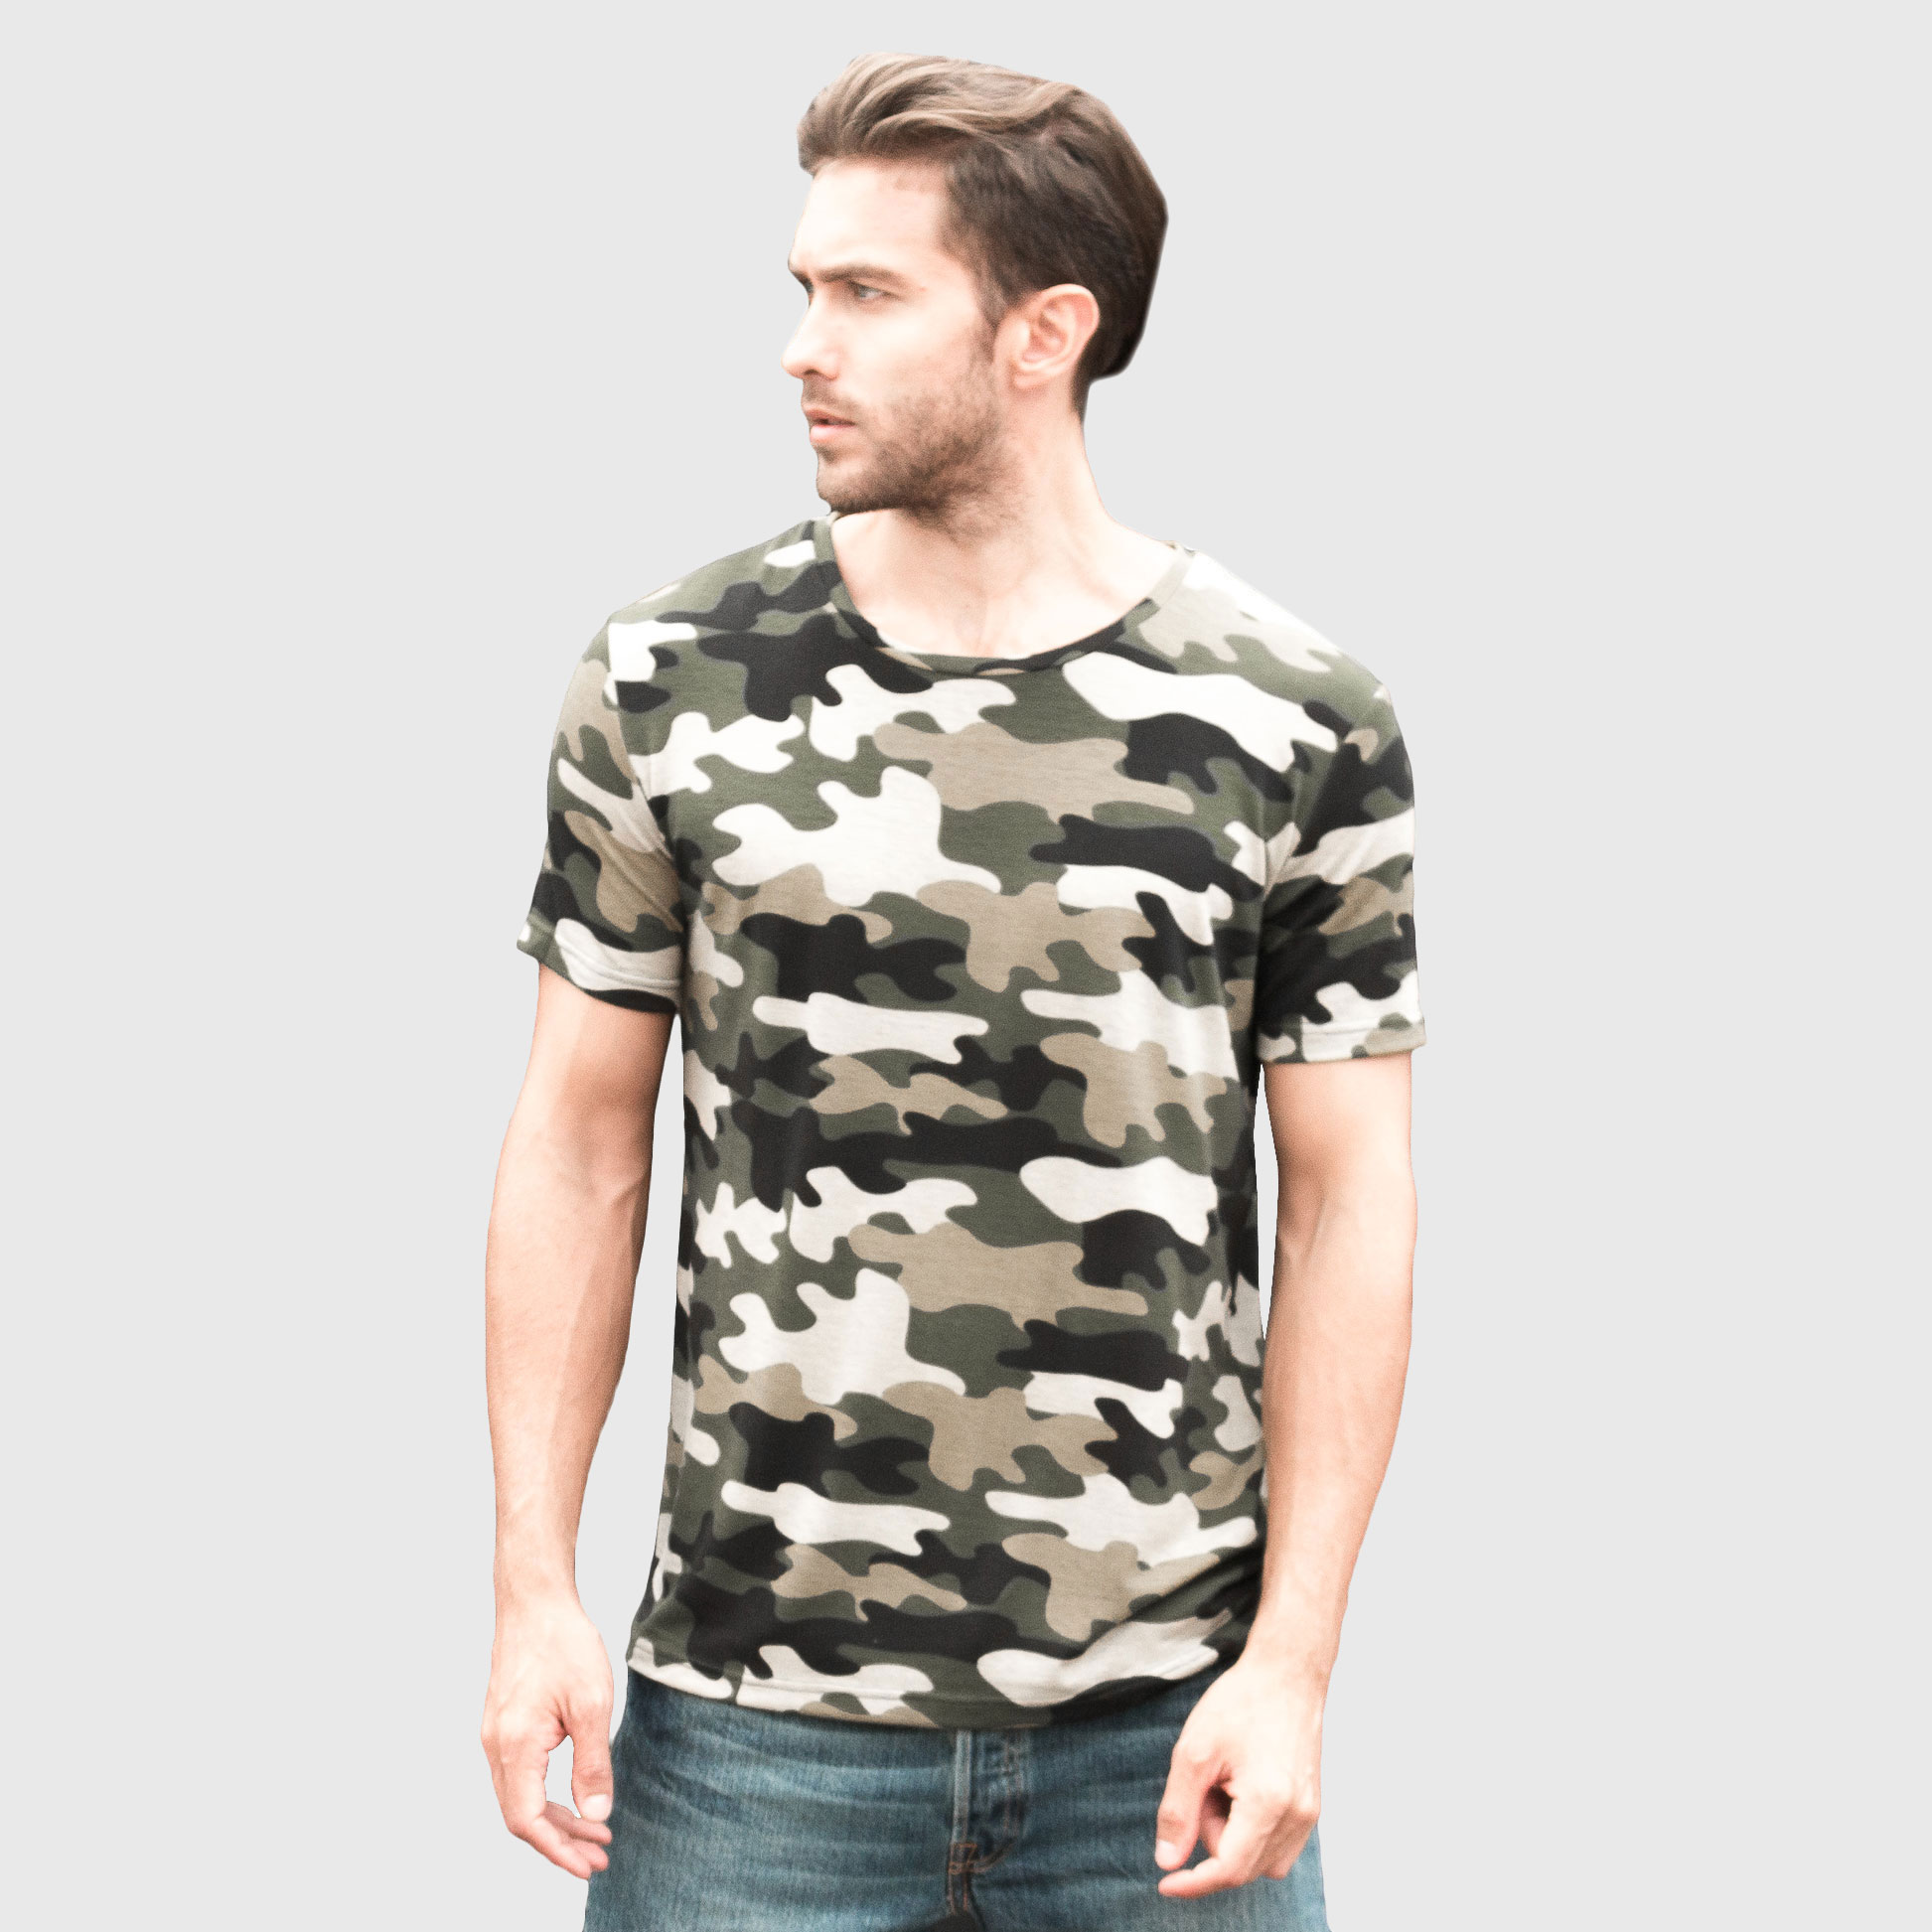 Camouflage T-Shirt Men Army Military T Shirt Fitness Top Tees Male Cool Short Sleeve Camo O Neck Green Casual